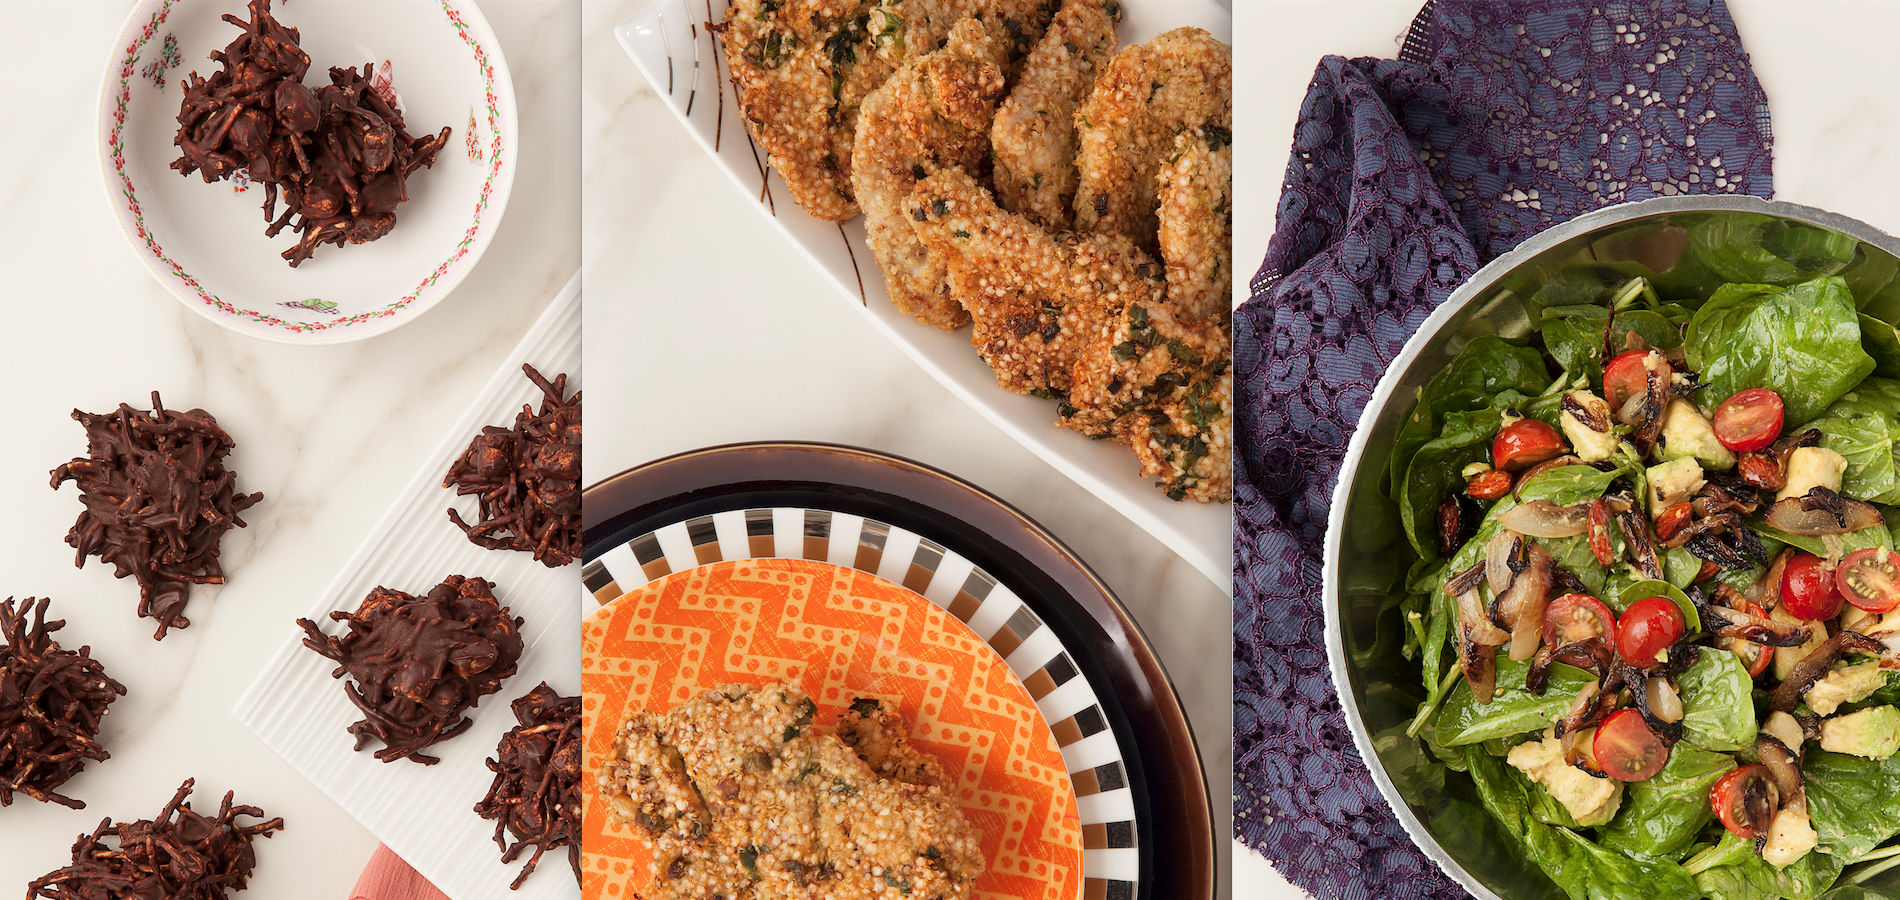 Silver Platter Recipes for a Gourmet Kosher Pesach!